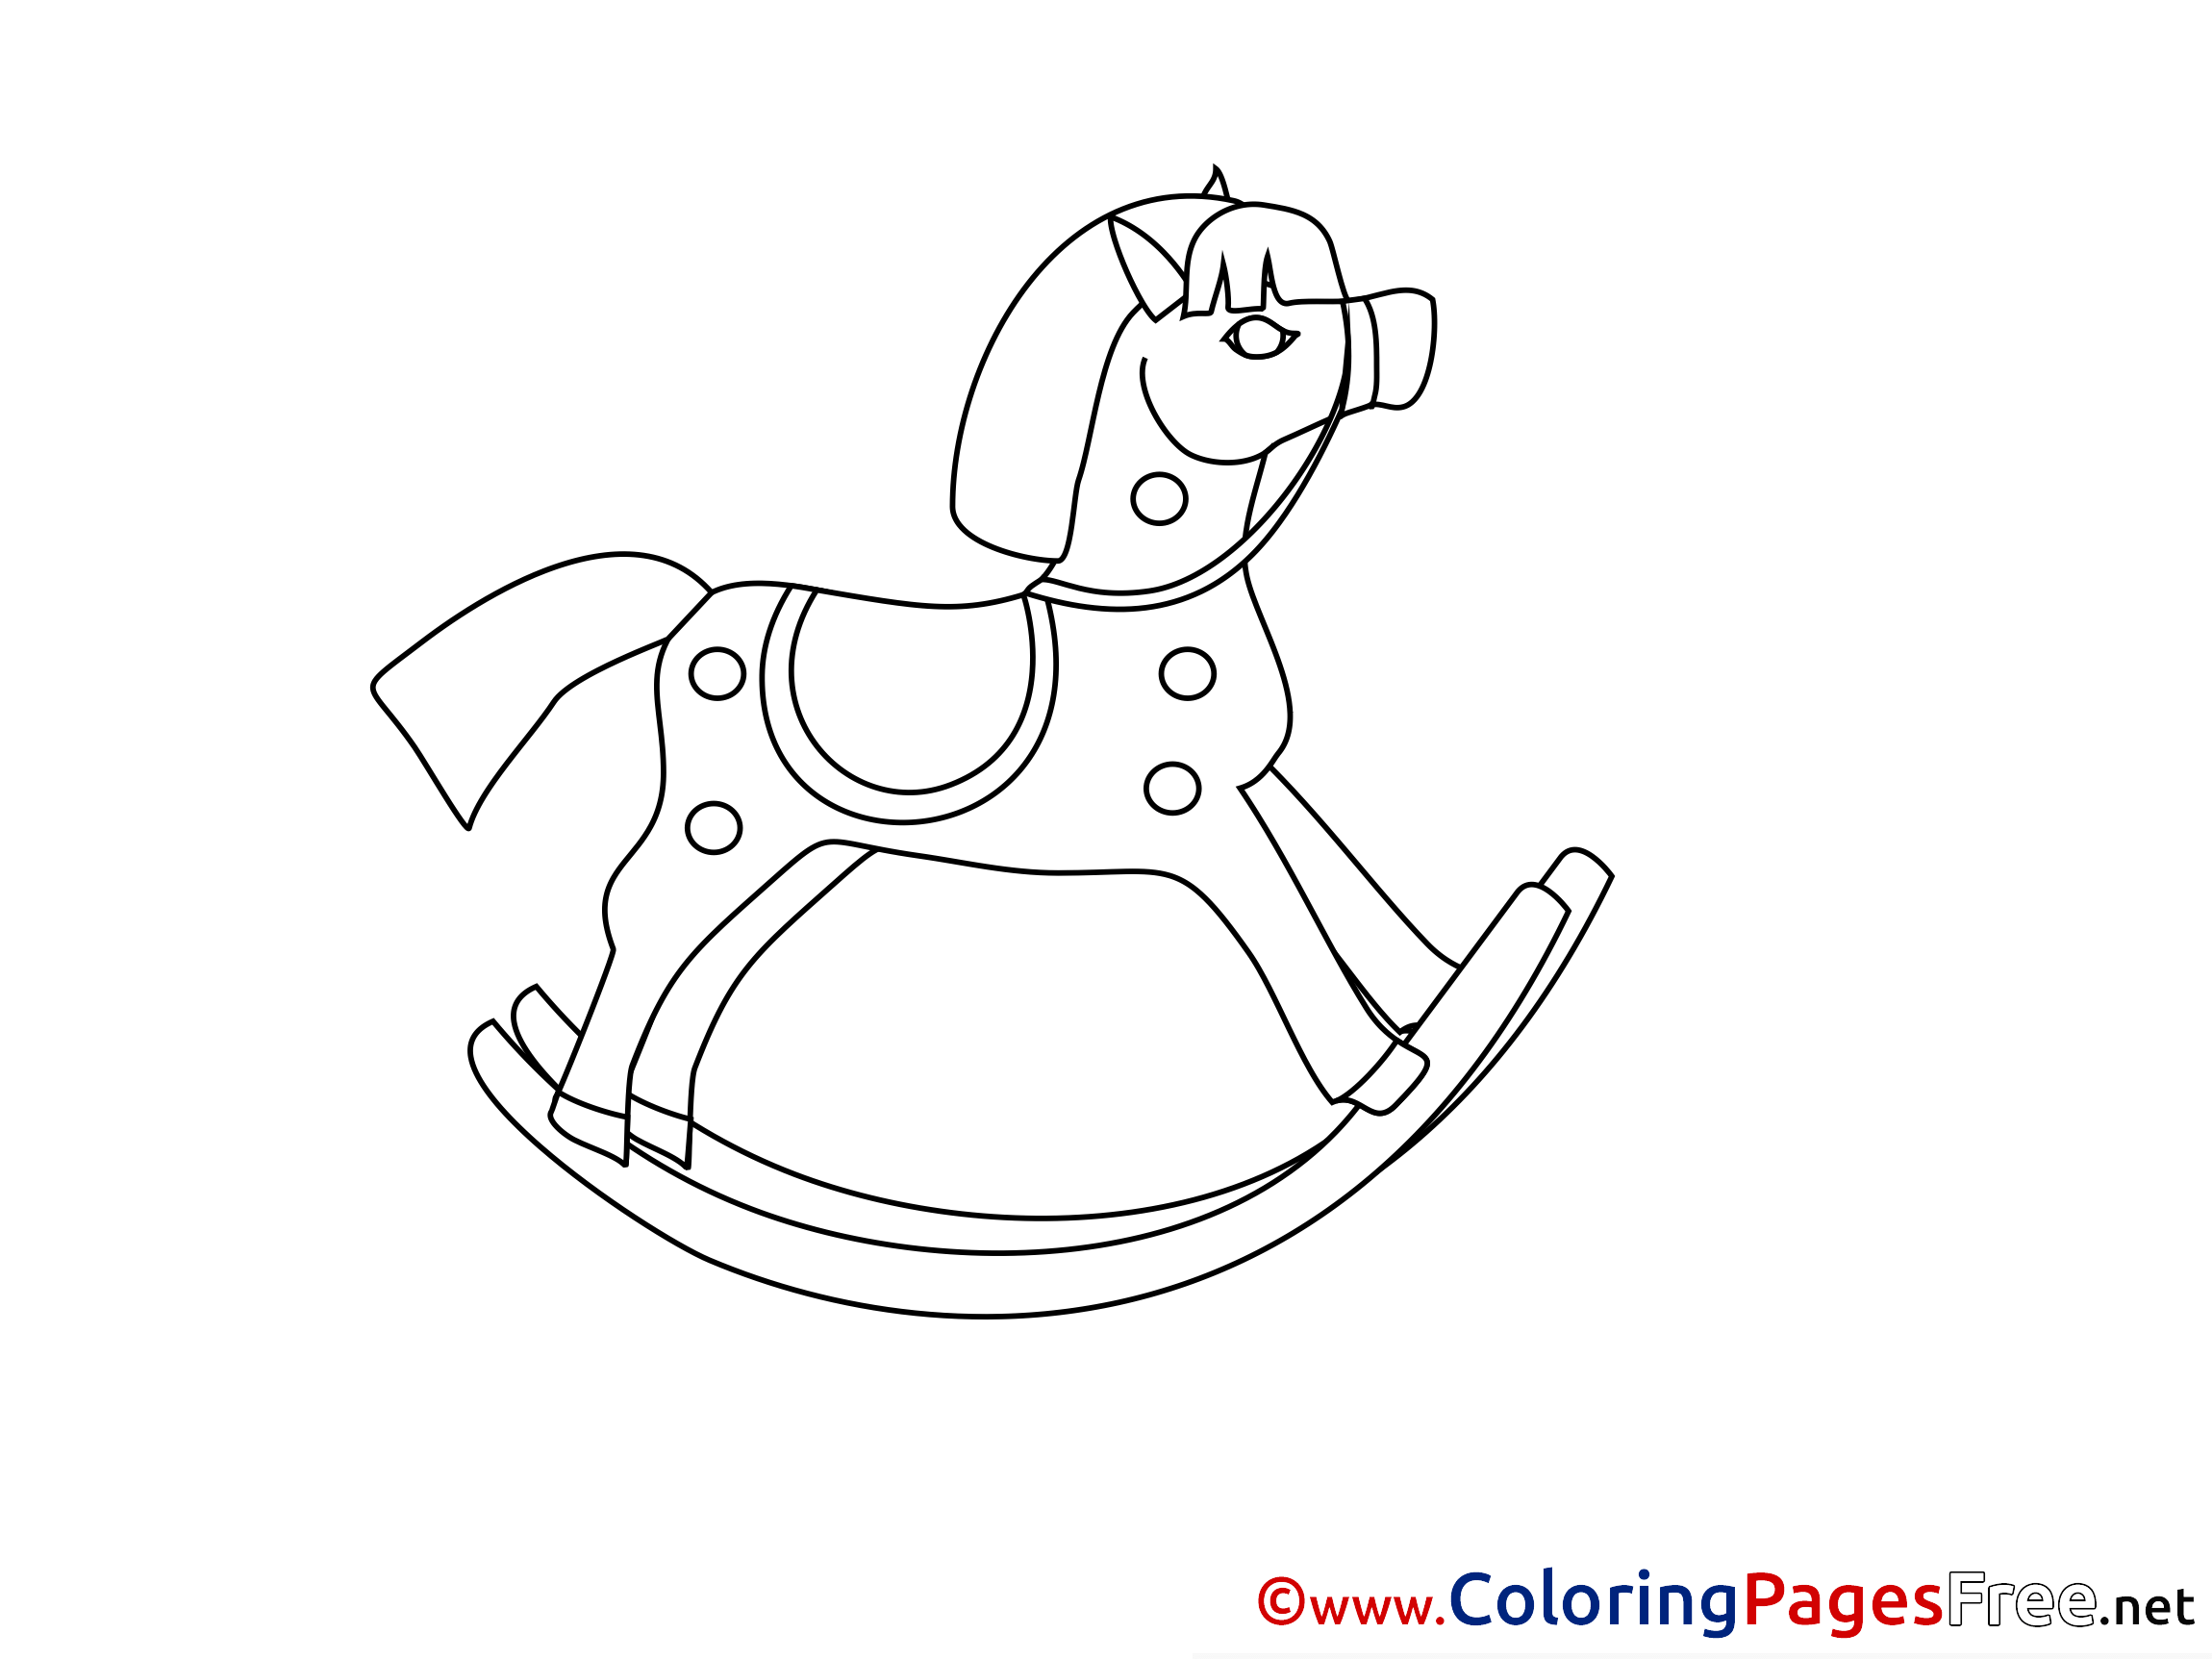 Rocking Horse Kids Free Coloring Page